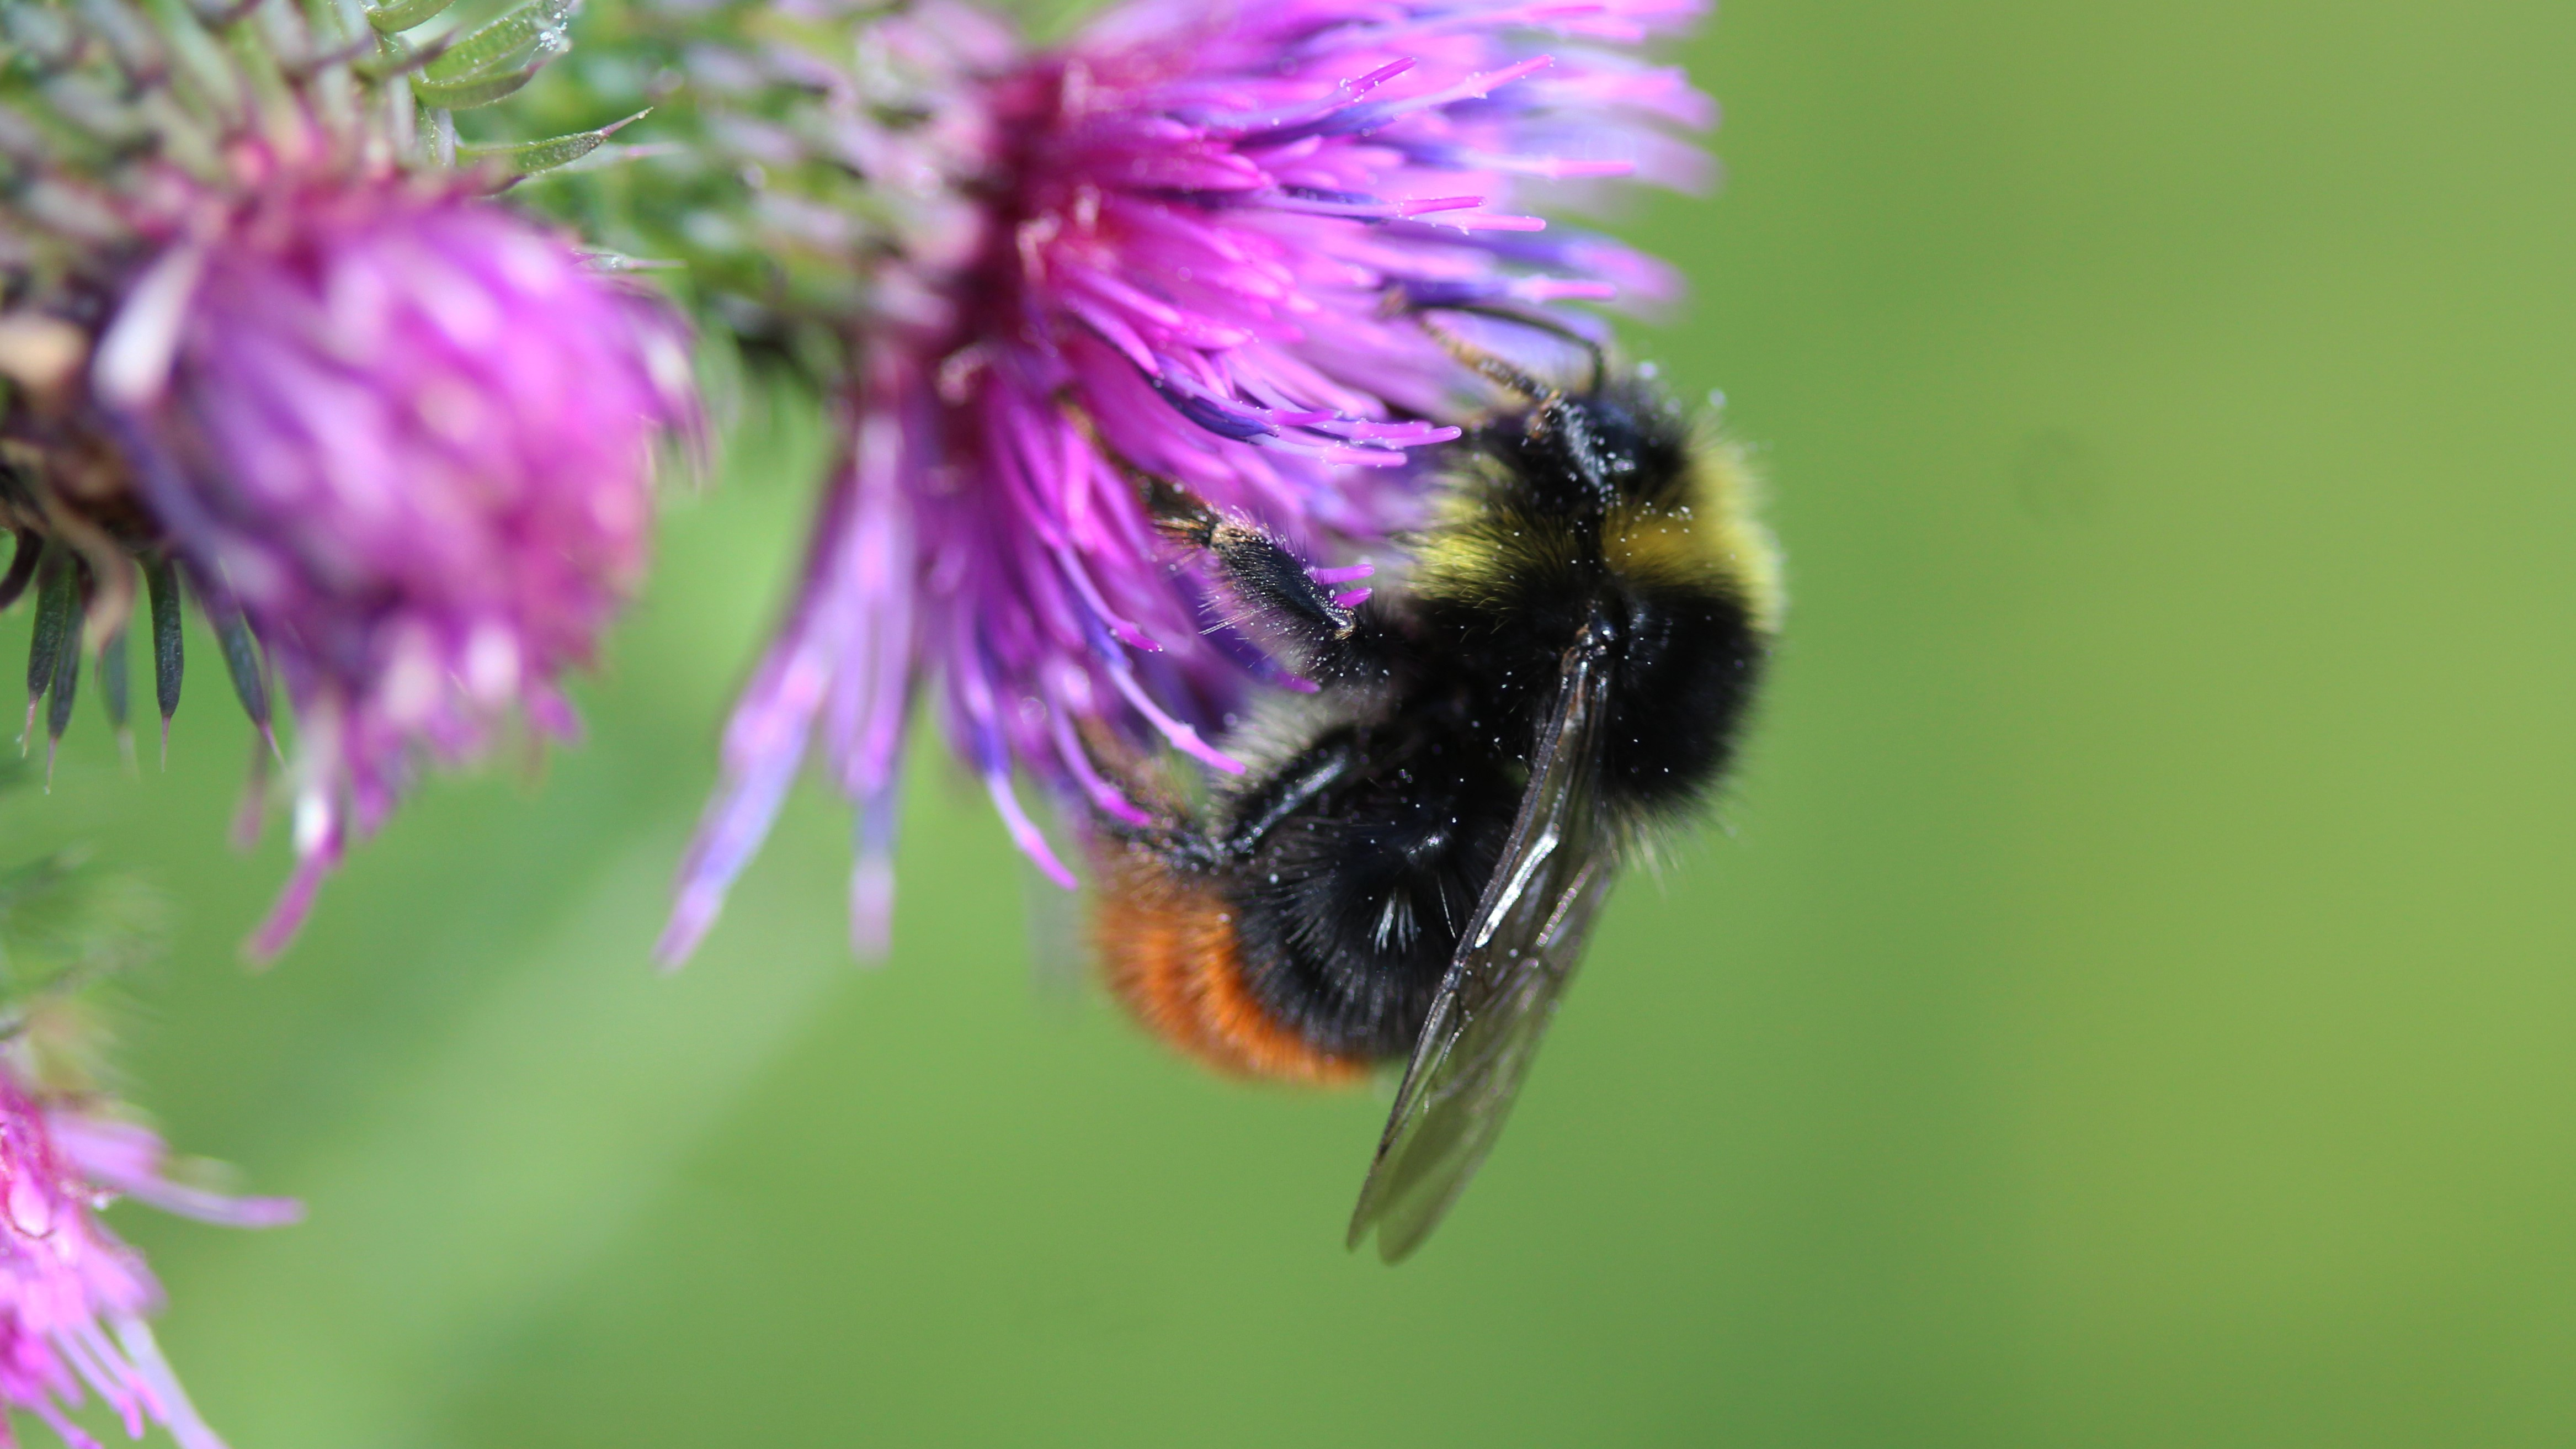 Attract Bees - Attract Bumblebees - Bumblebees -Early Bumblebee - Female